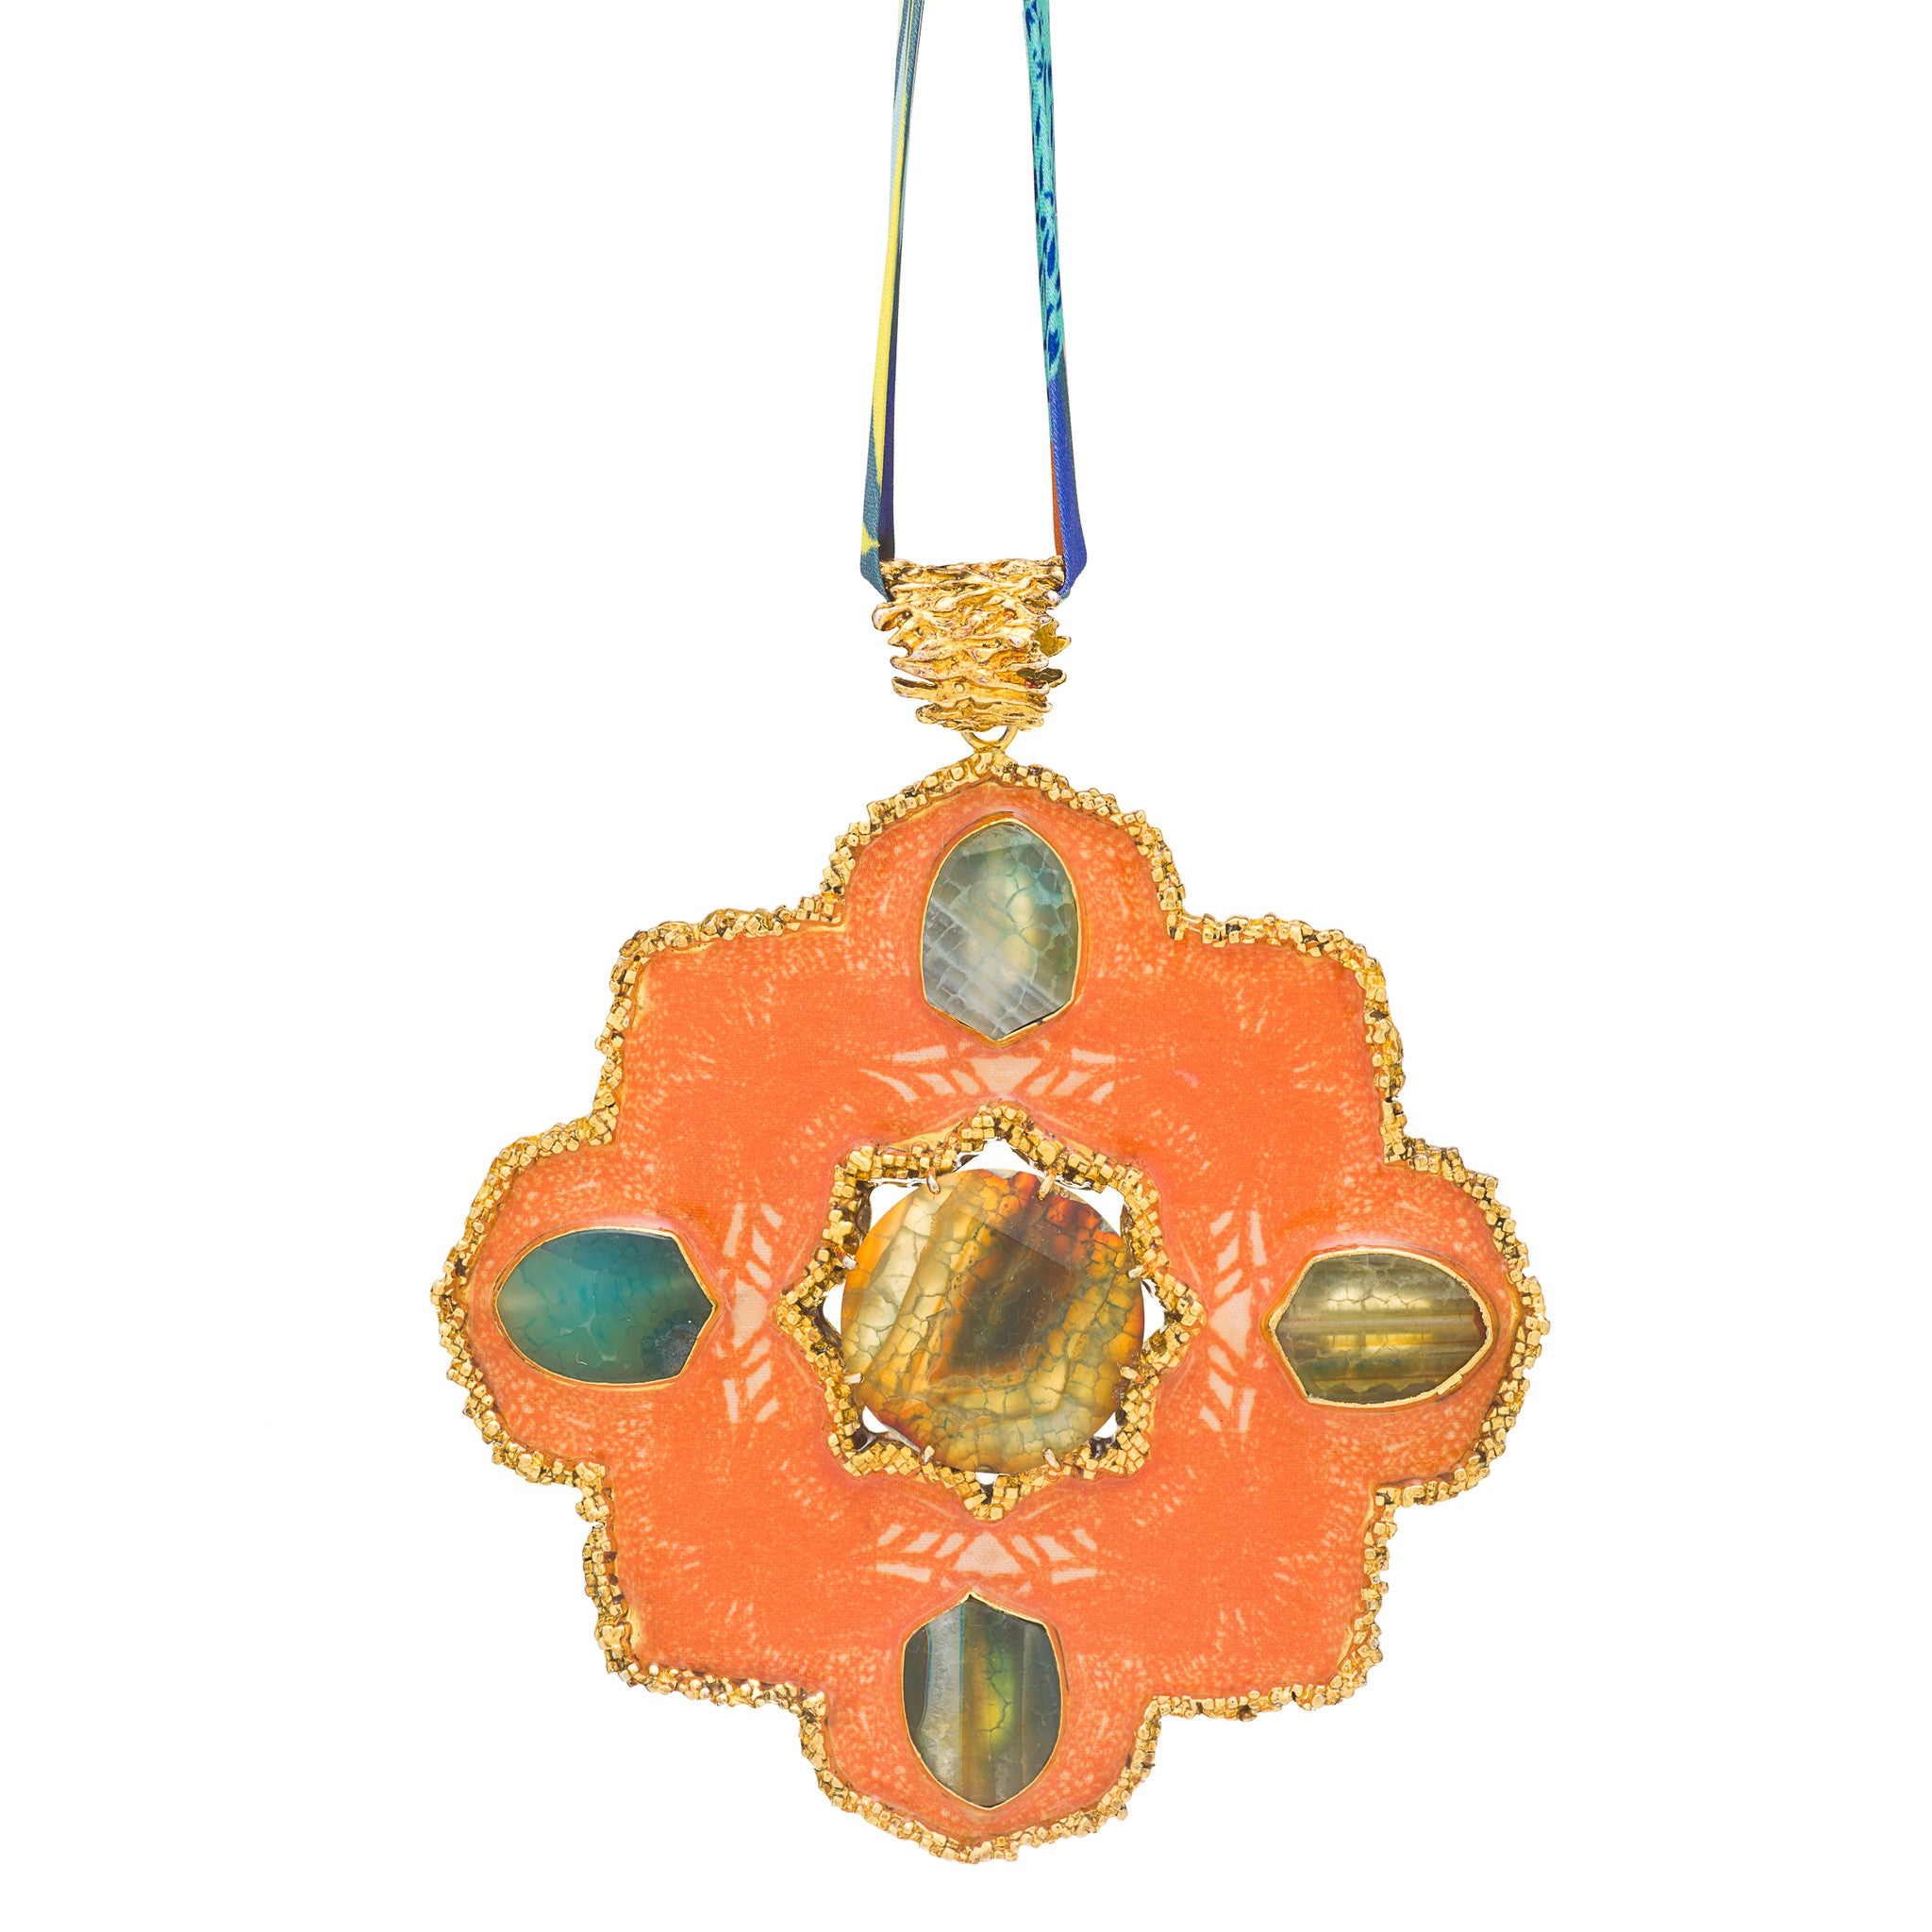 Orange Medallion necklace